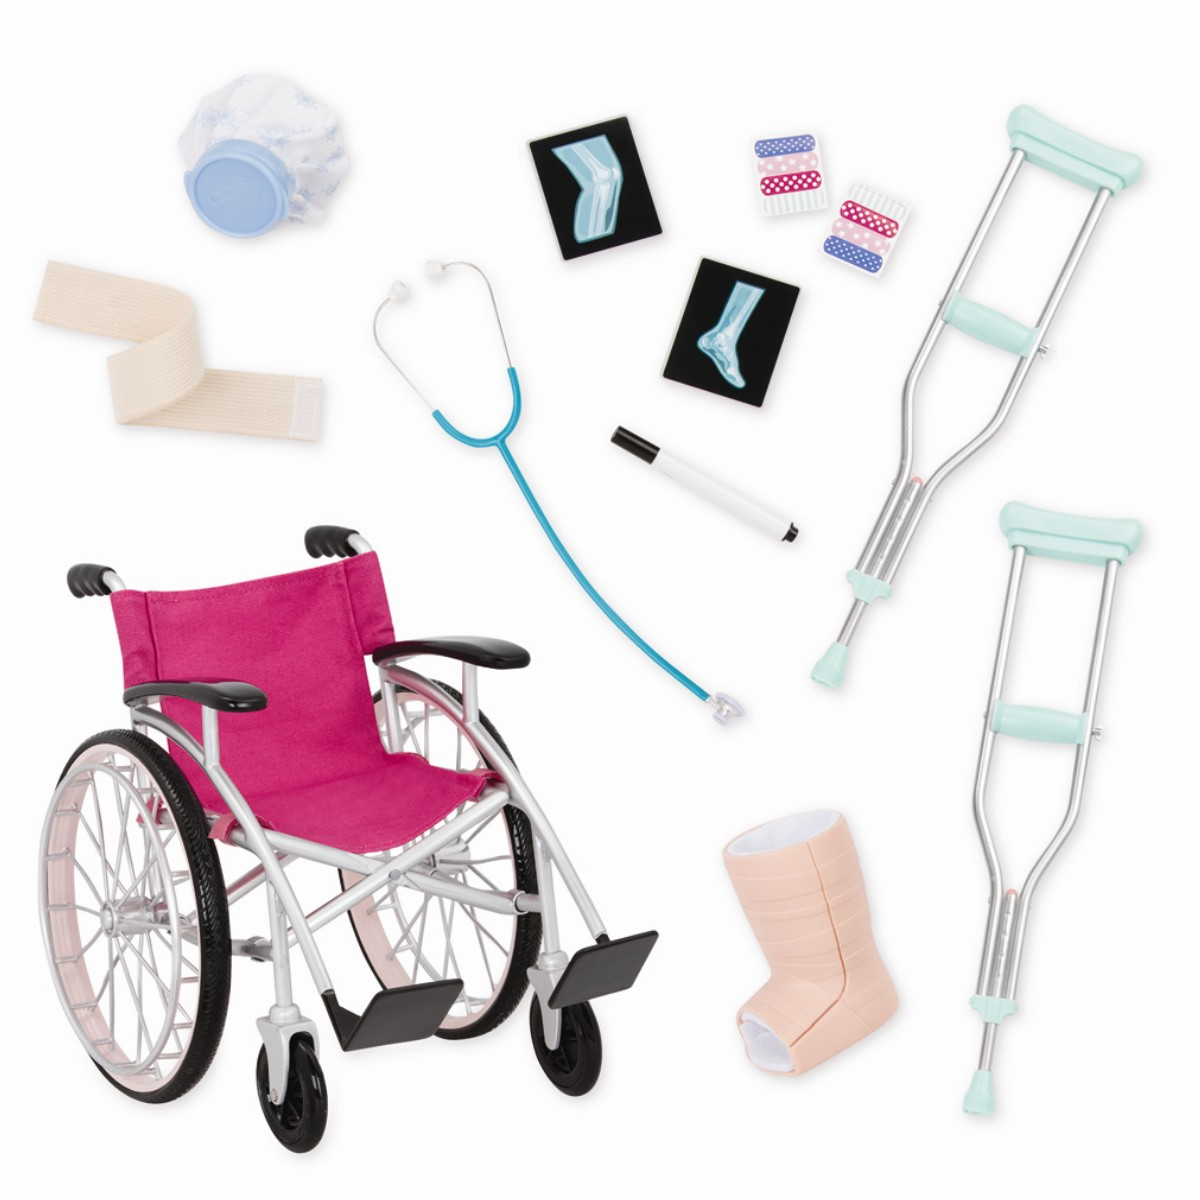 Our Generation - Hospital Set with Wheelchair (737988)